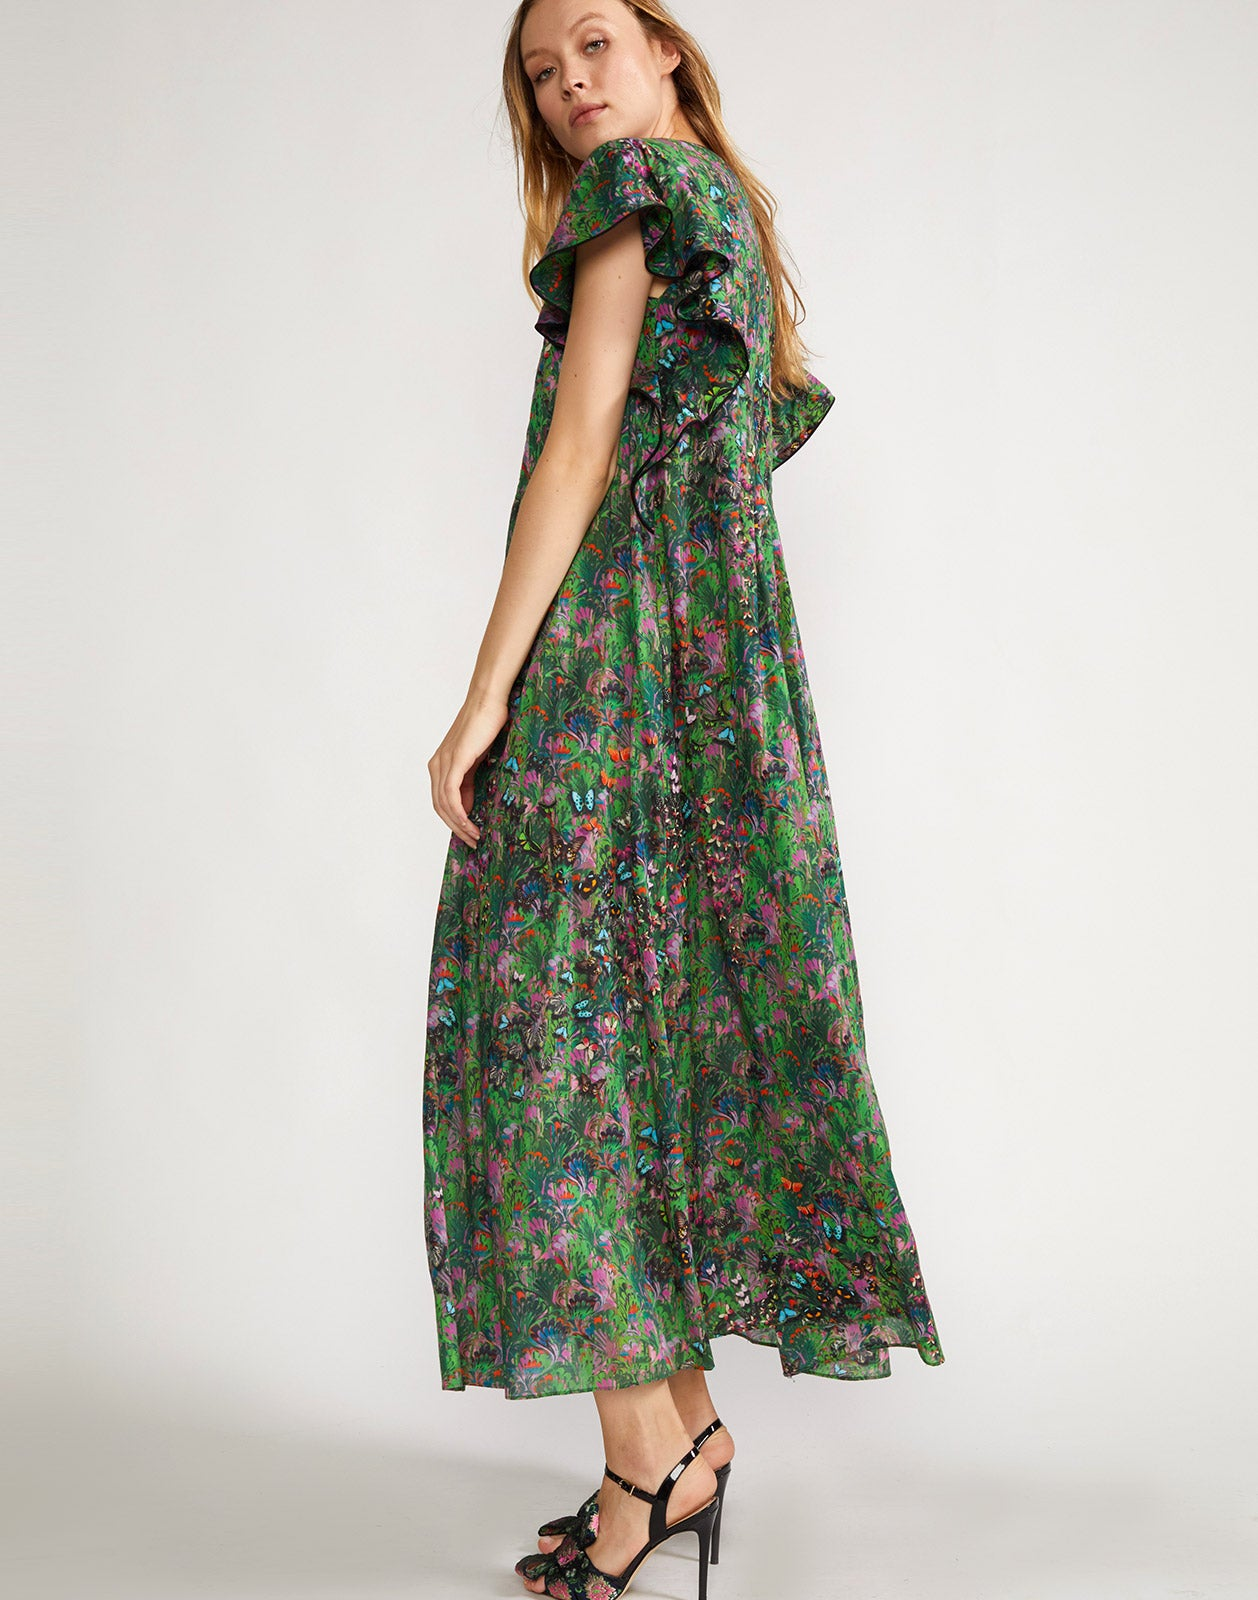 Ruffle sleeve printed dress with maxi length hem